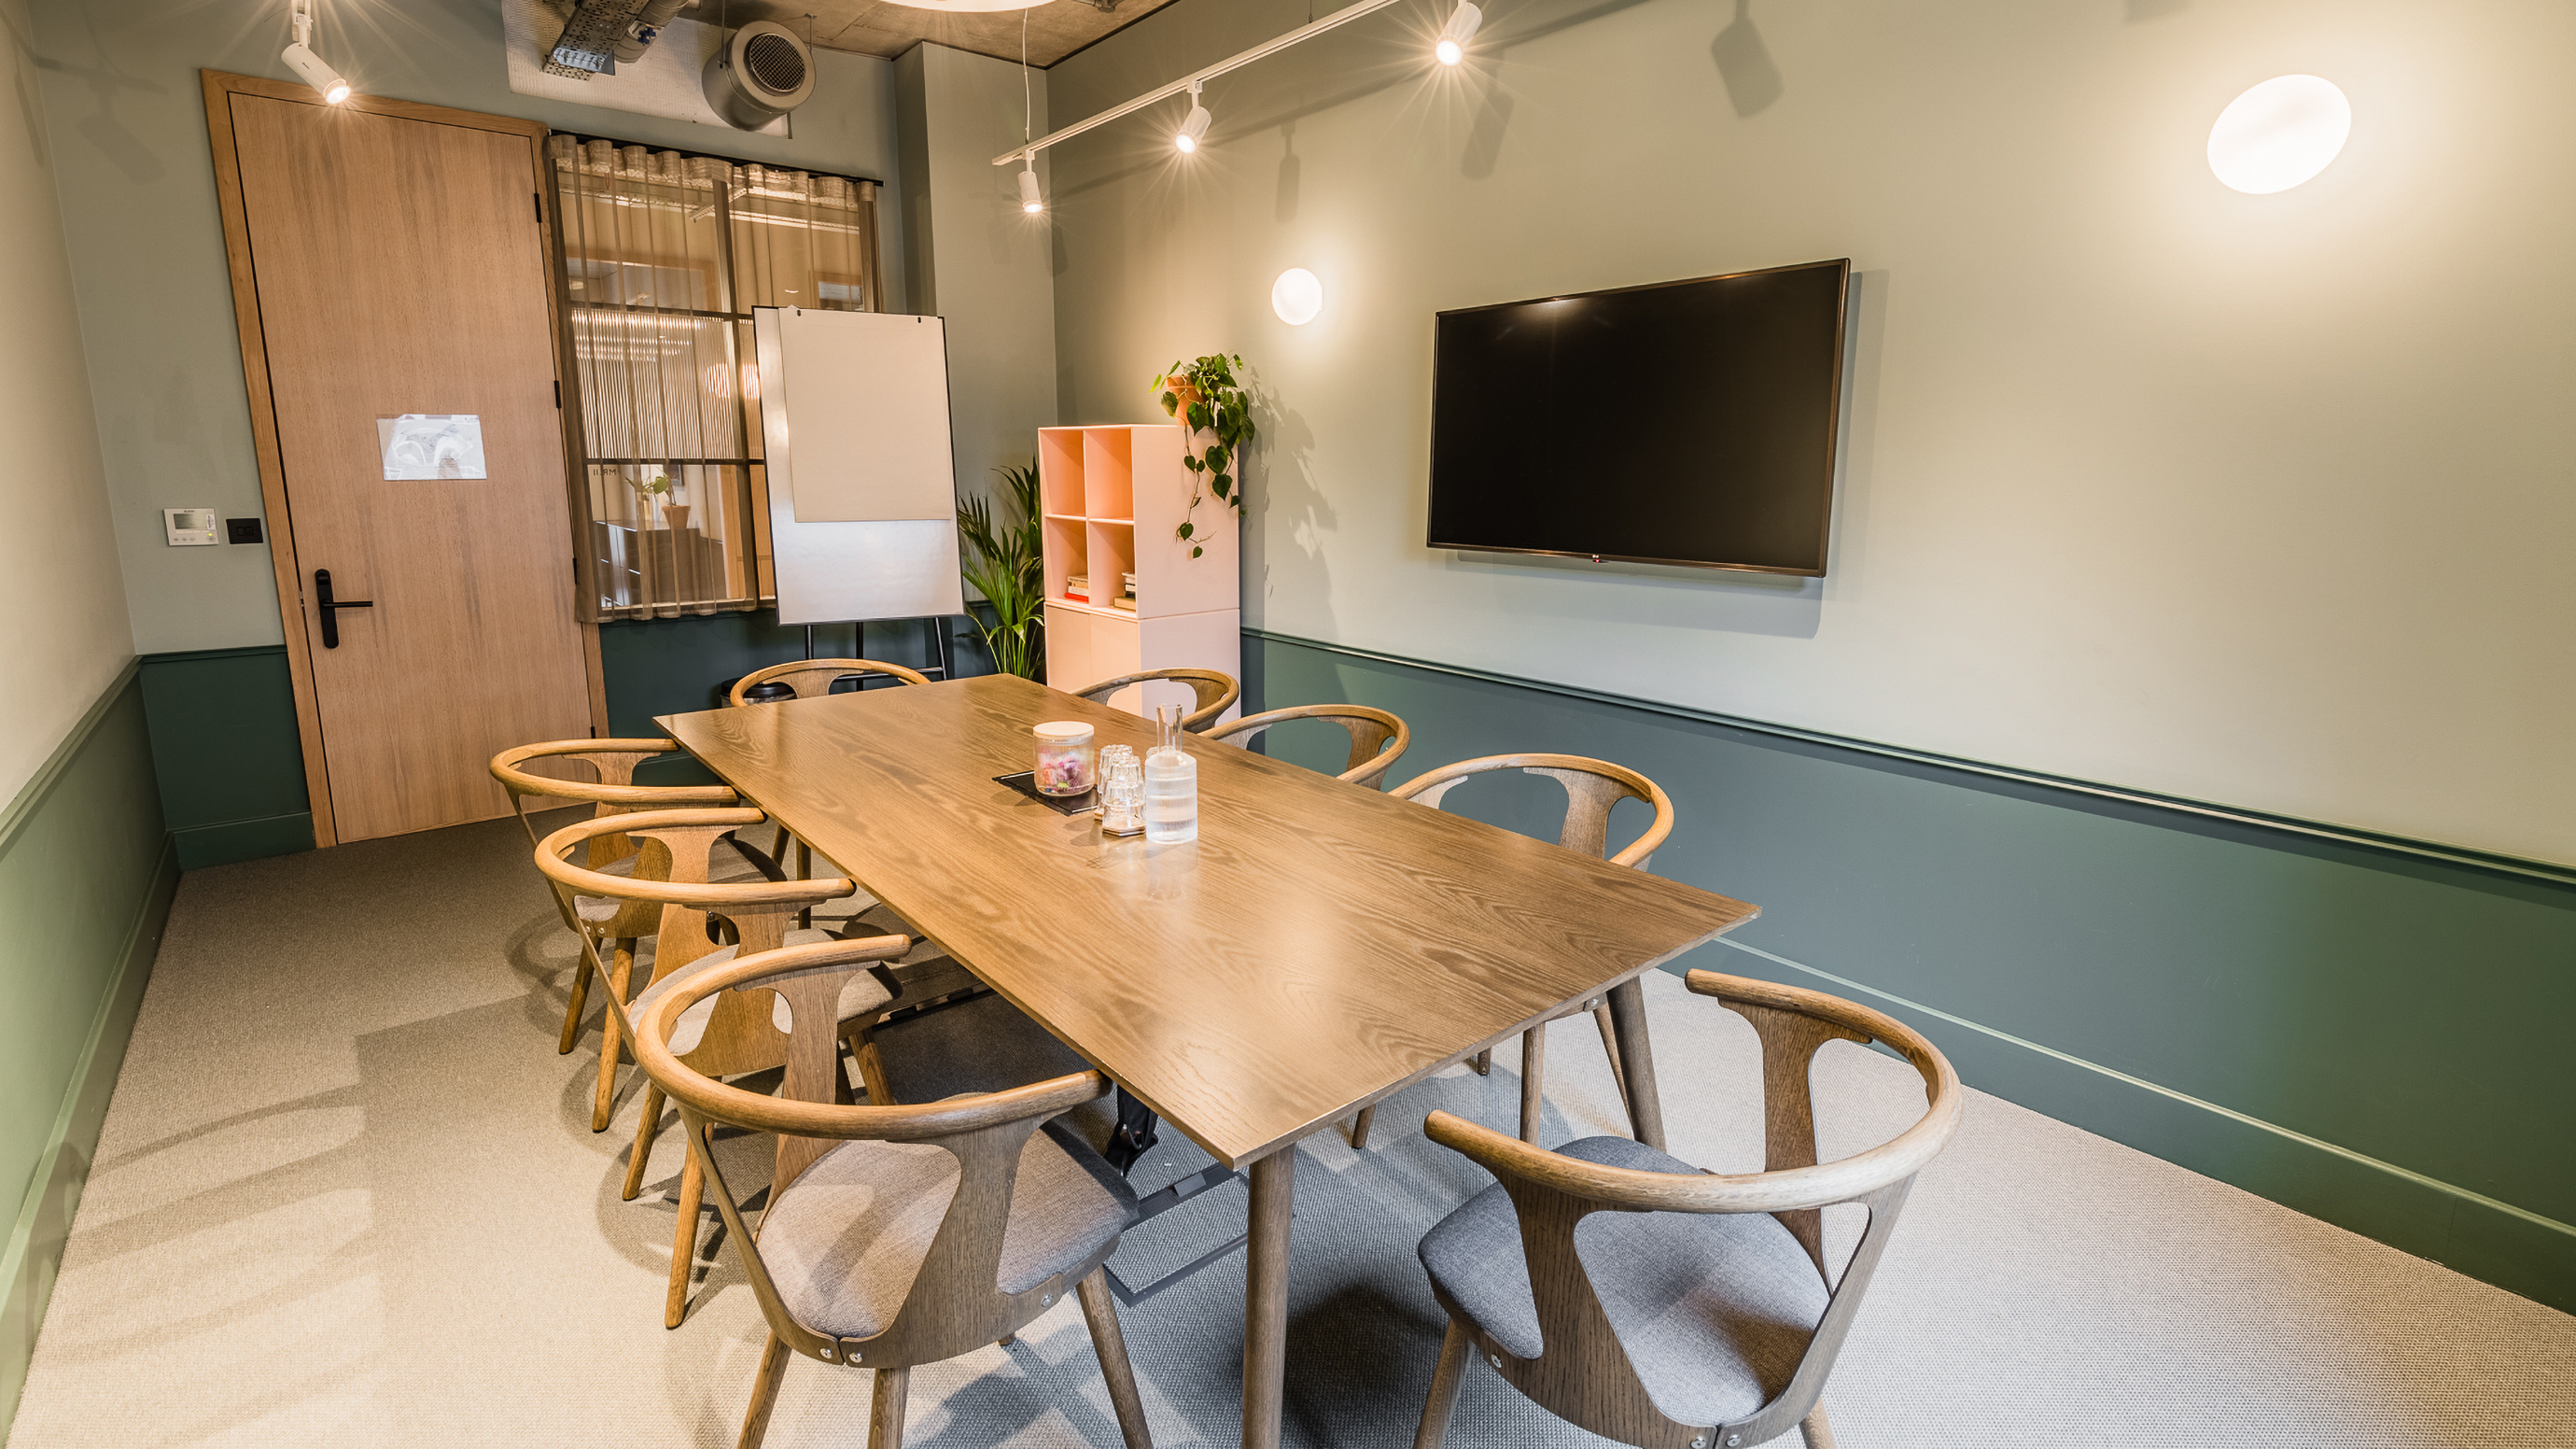 Medium meeting room with wooden rectangular table and chairs and teal walls at TOG building Thomas House London